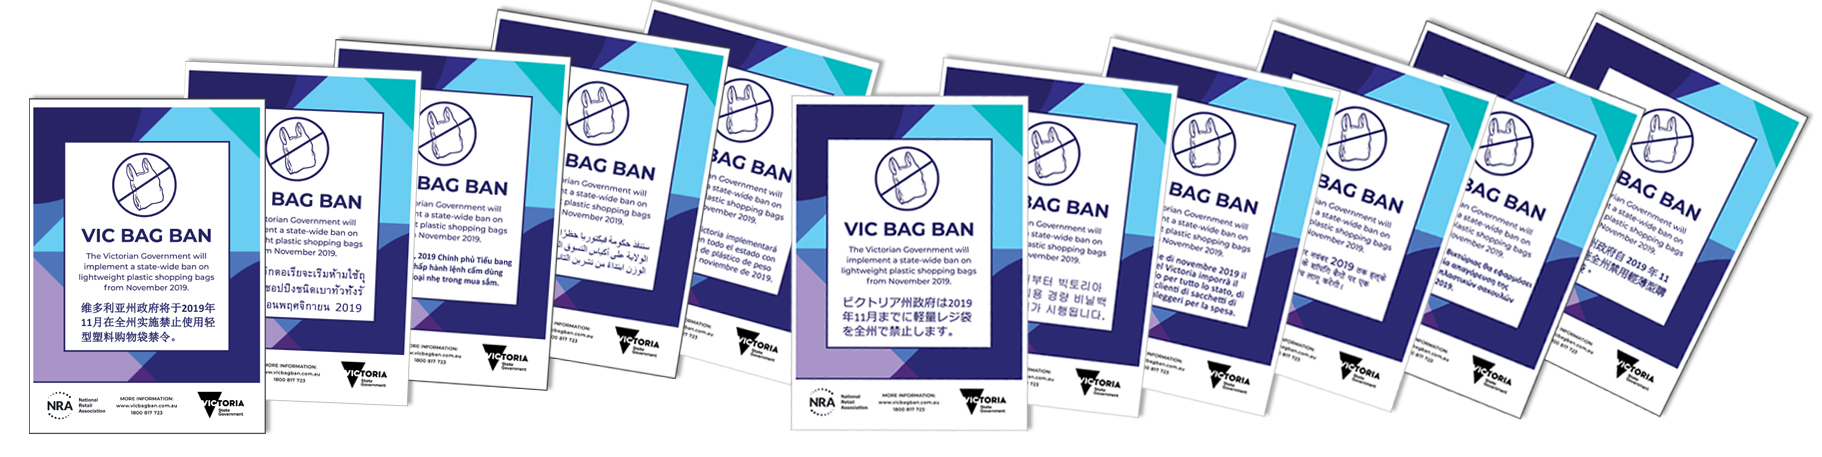 VIC-BAG-BAN-translated-signs